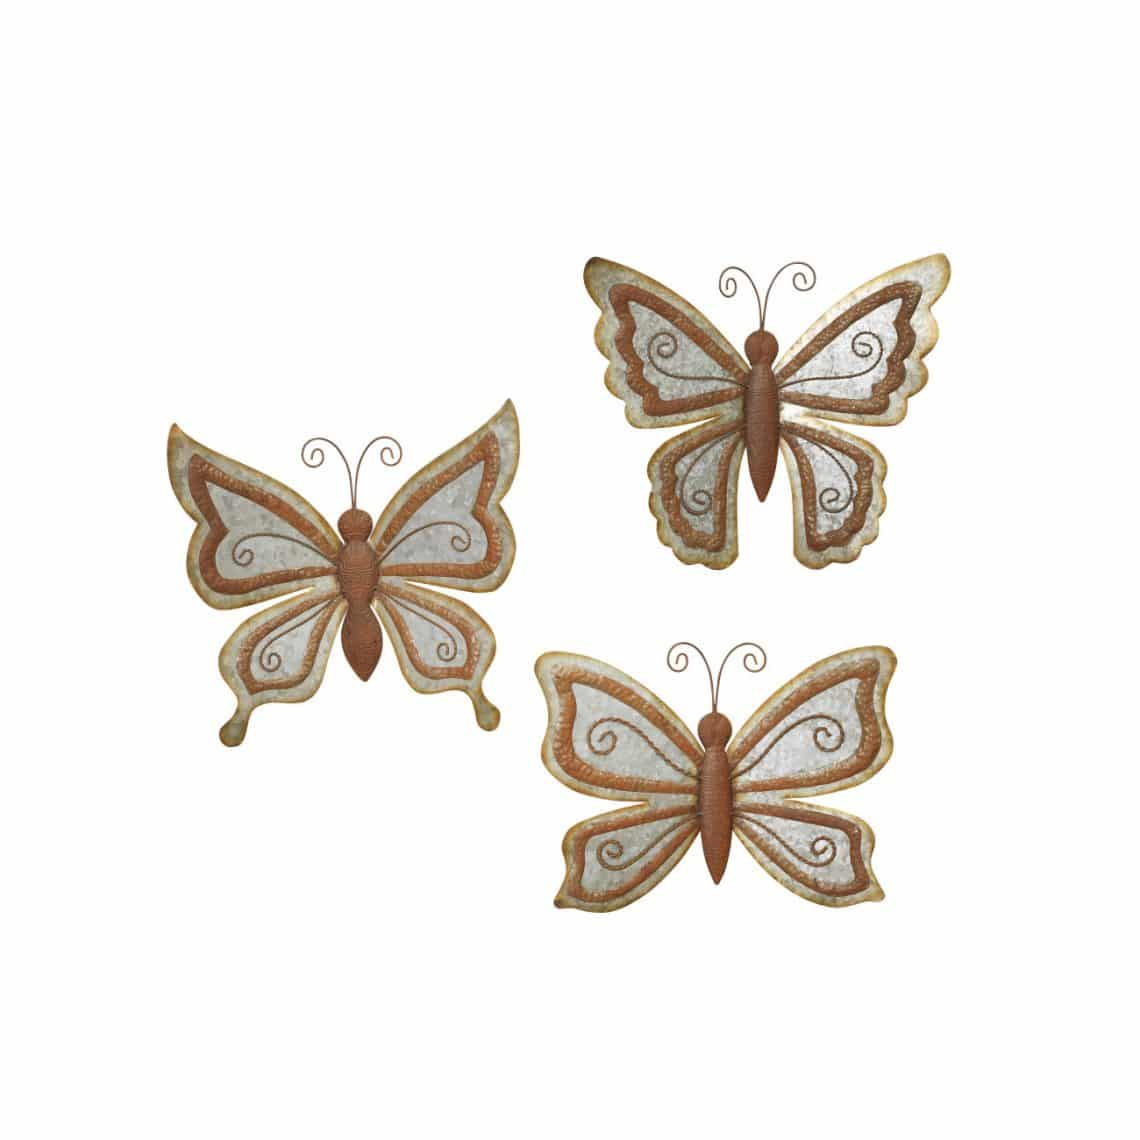 Exceptional Assorted Antique Galvanized Butterfly Wall Decorations (Set ...